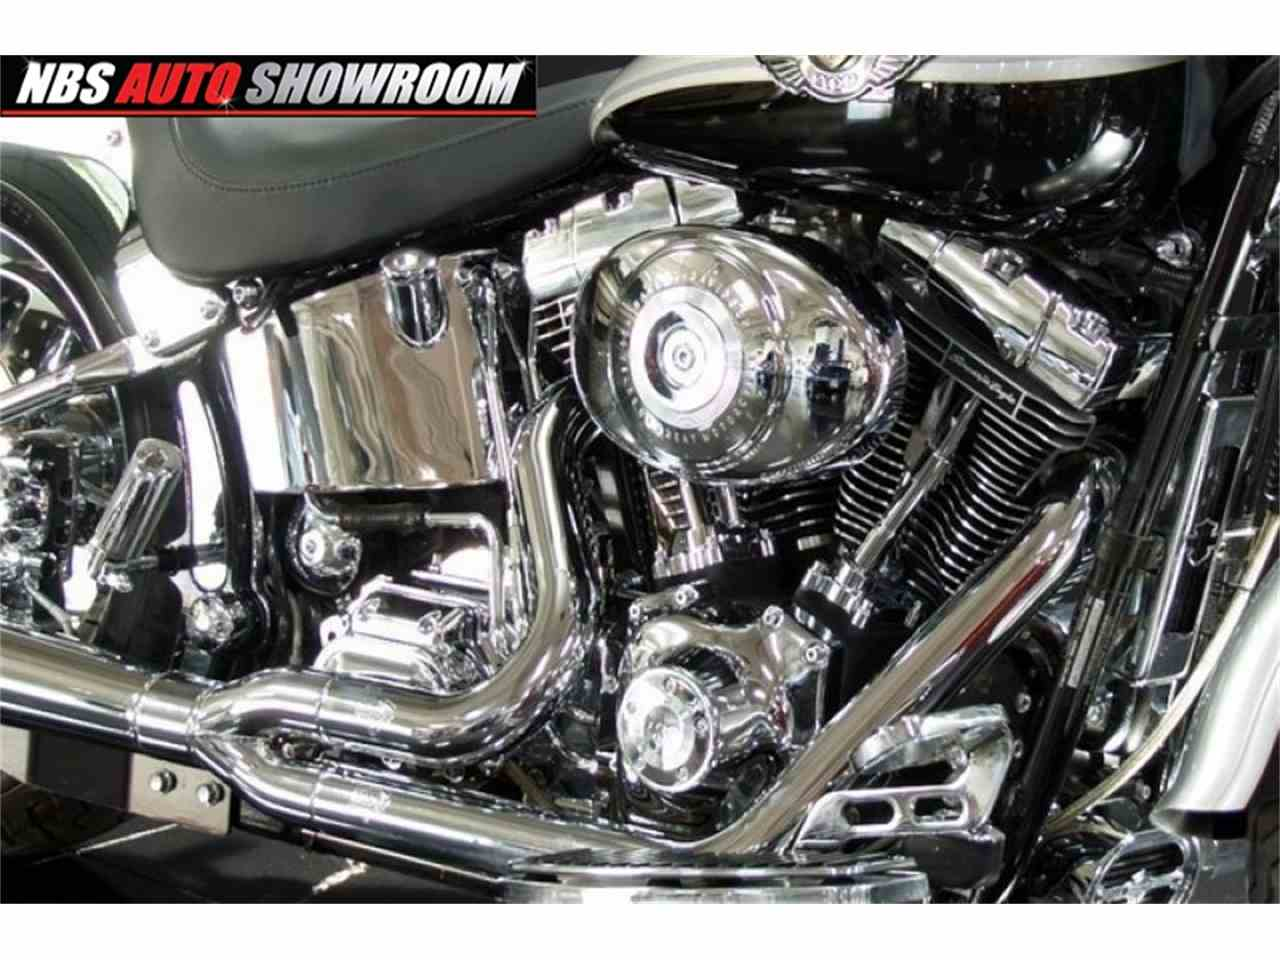 Large Picture of '03 Harley Davidson SCREAMING EAGLE - $8,003.00 Offered by NBS Auto Showroom - IVXN